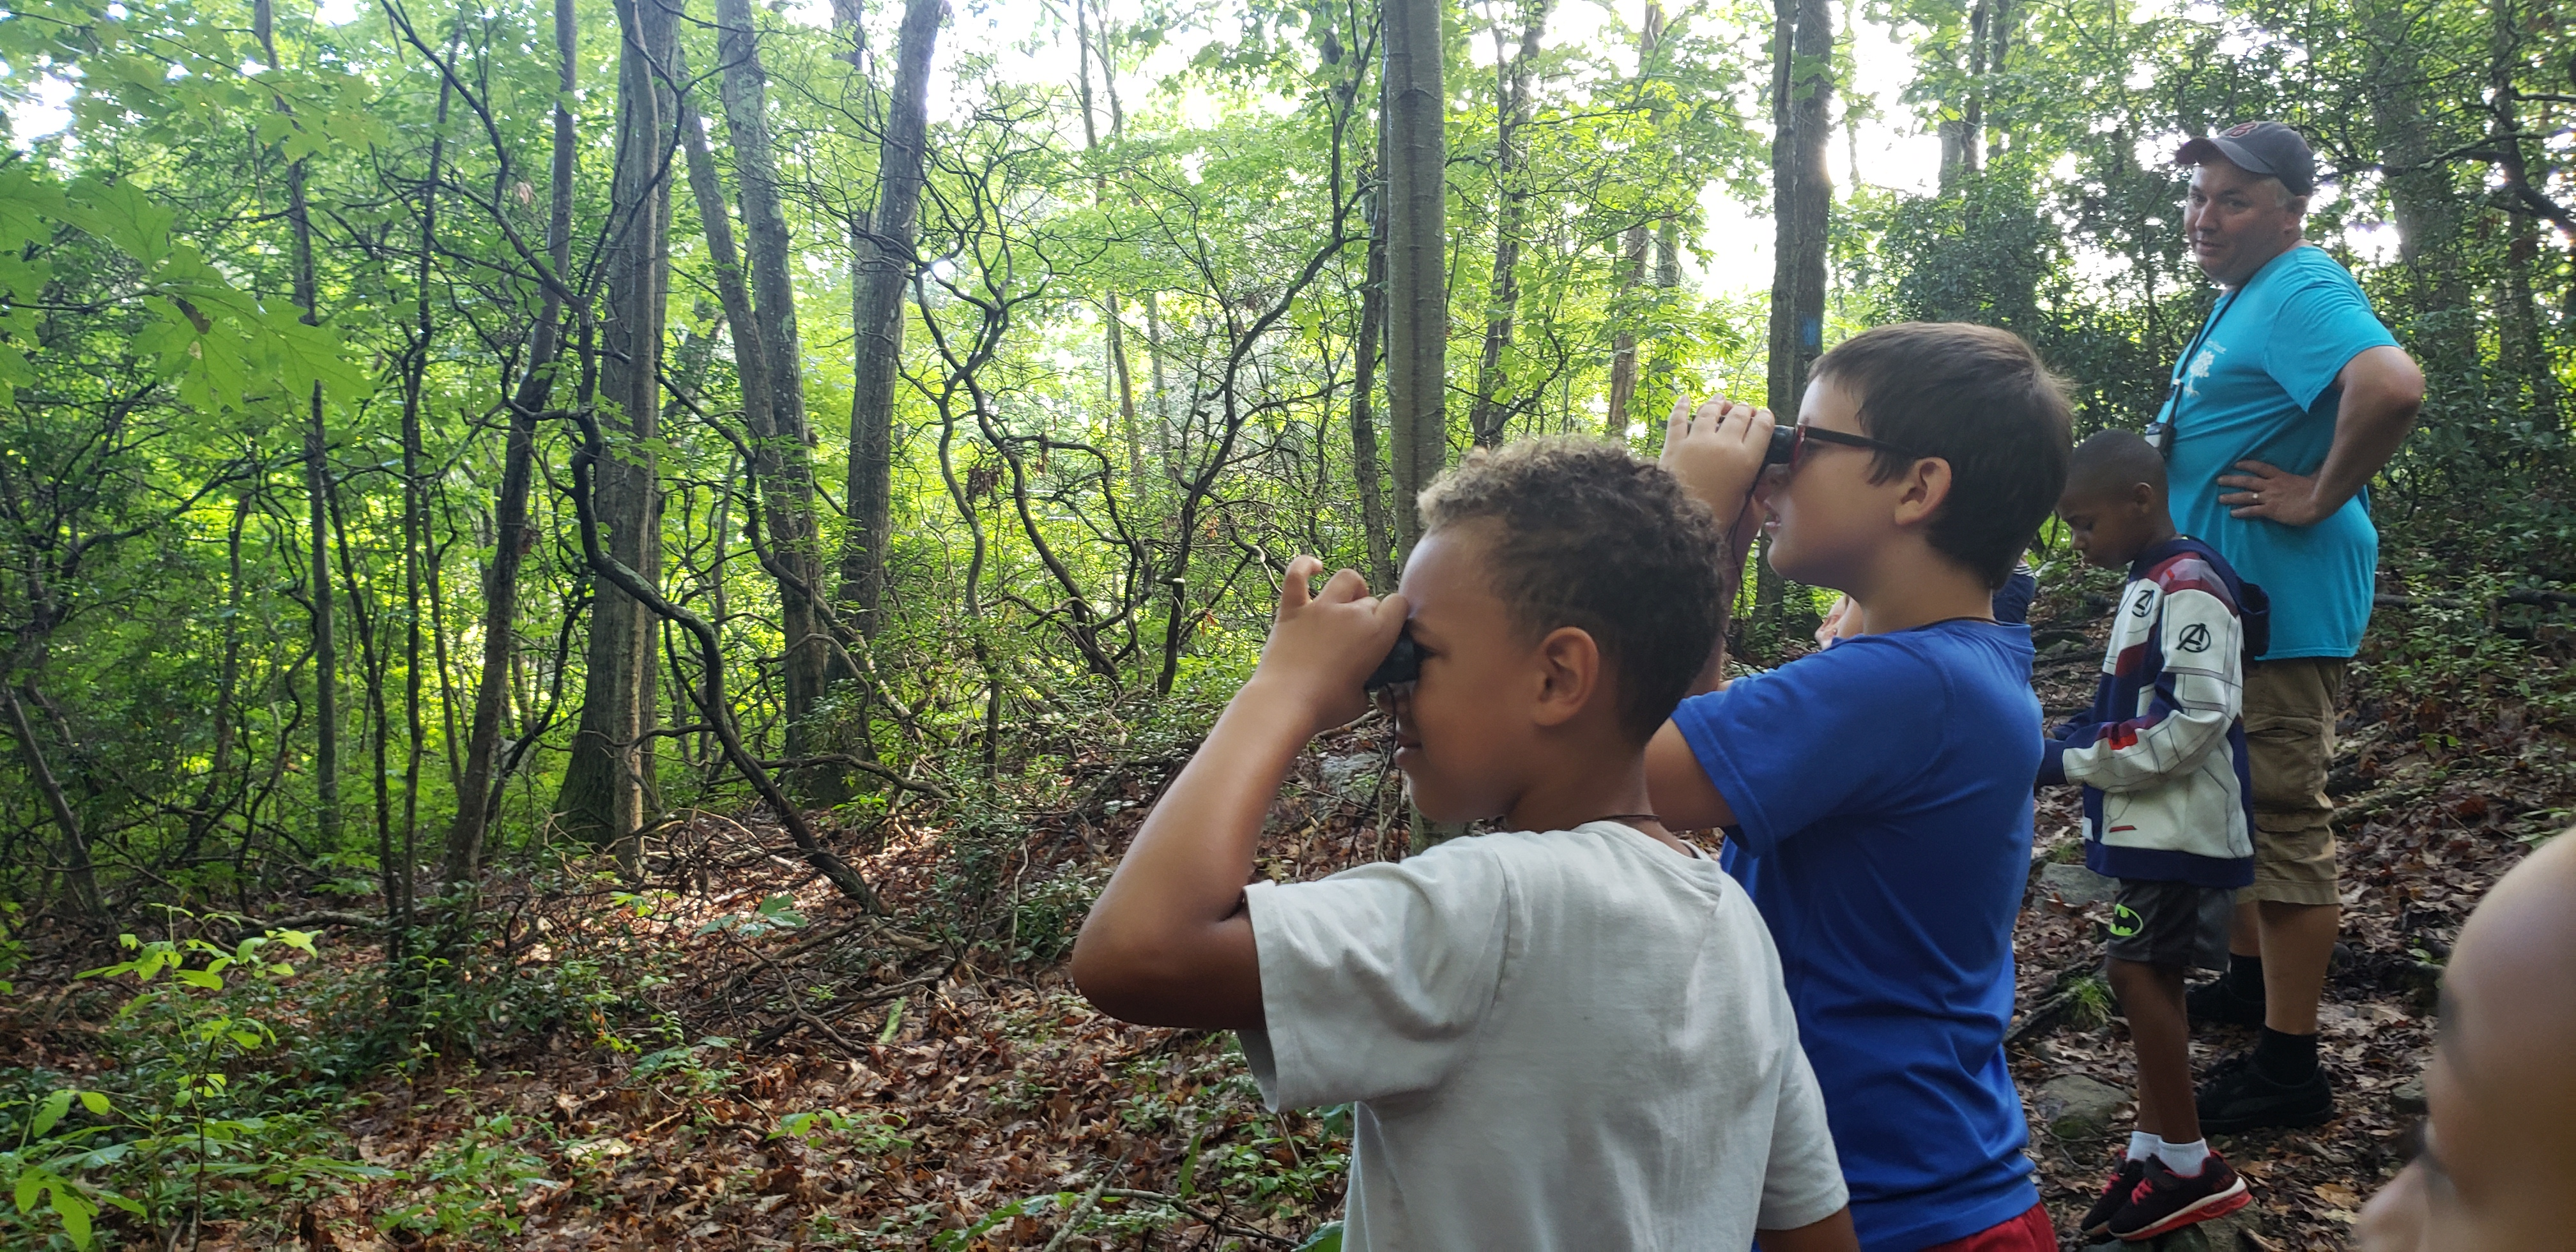 Two Tree House students standing on trail holding binoculars